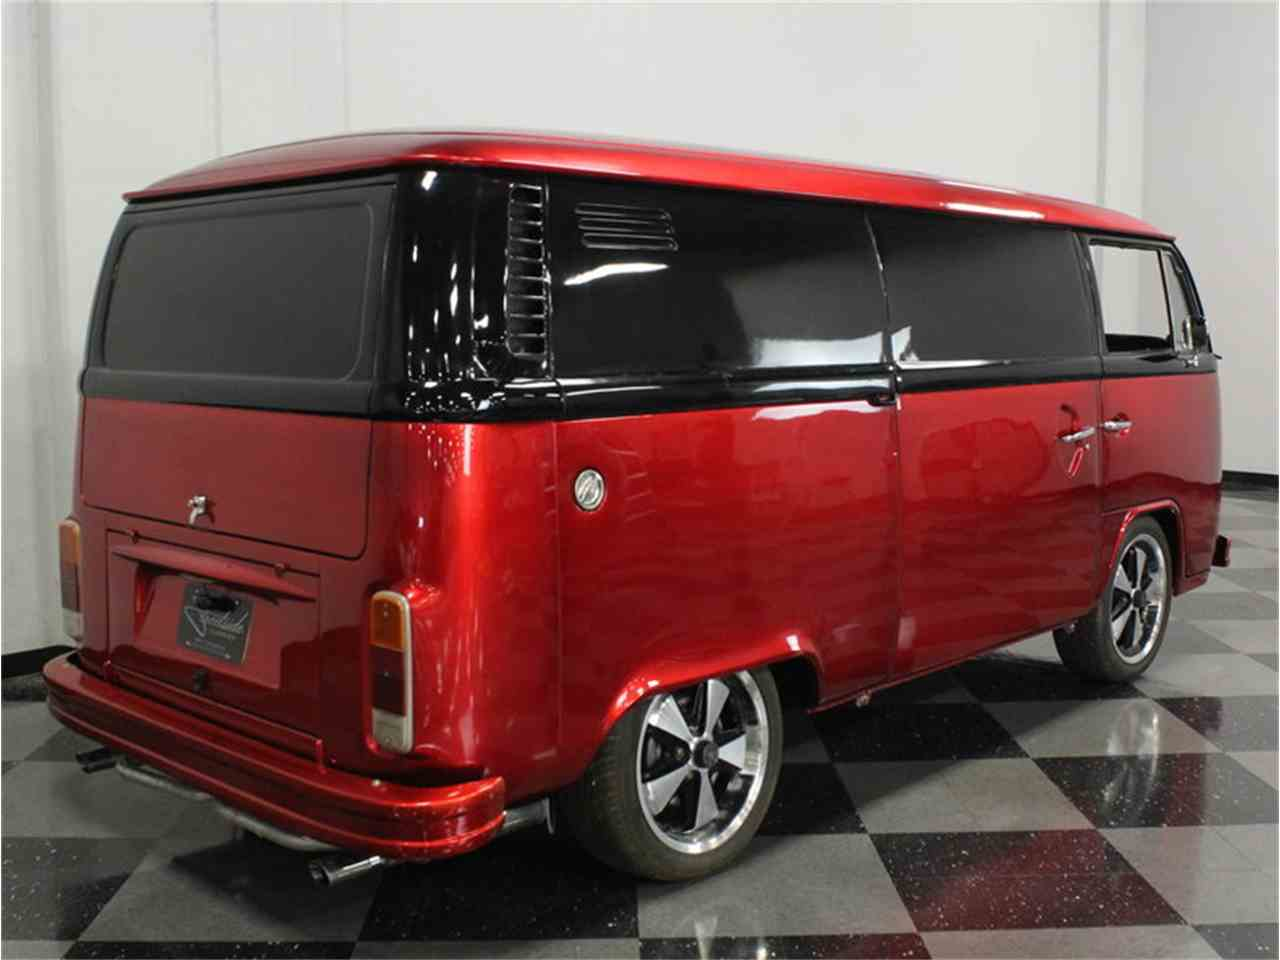 1979 Volkswagen Bus For Sale Classiccars Com Cc 854901